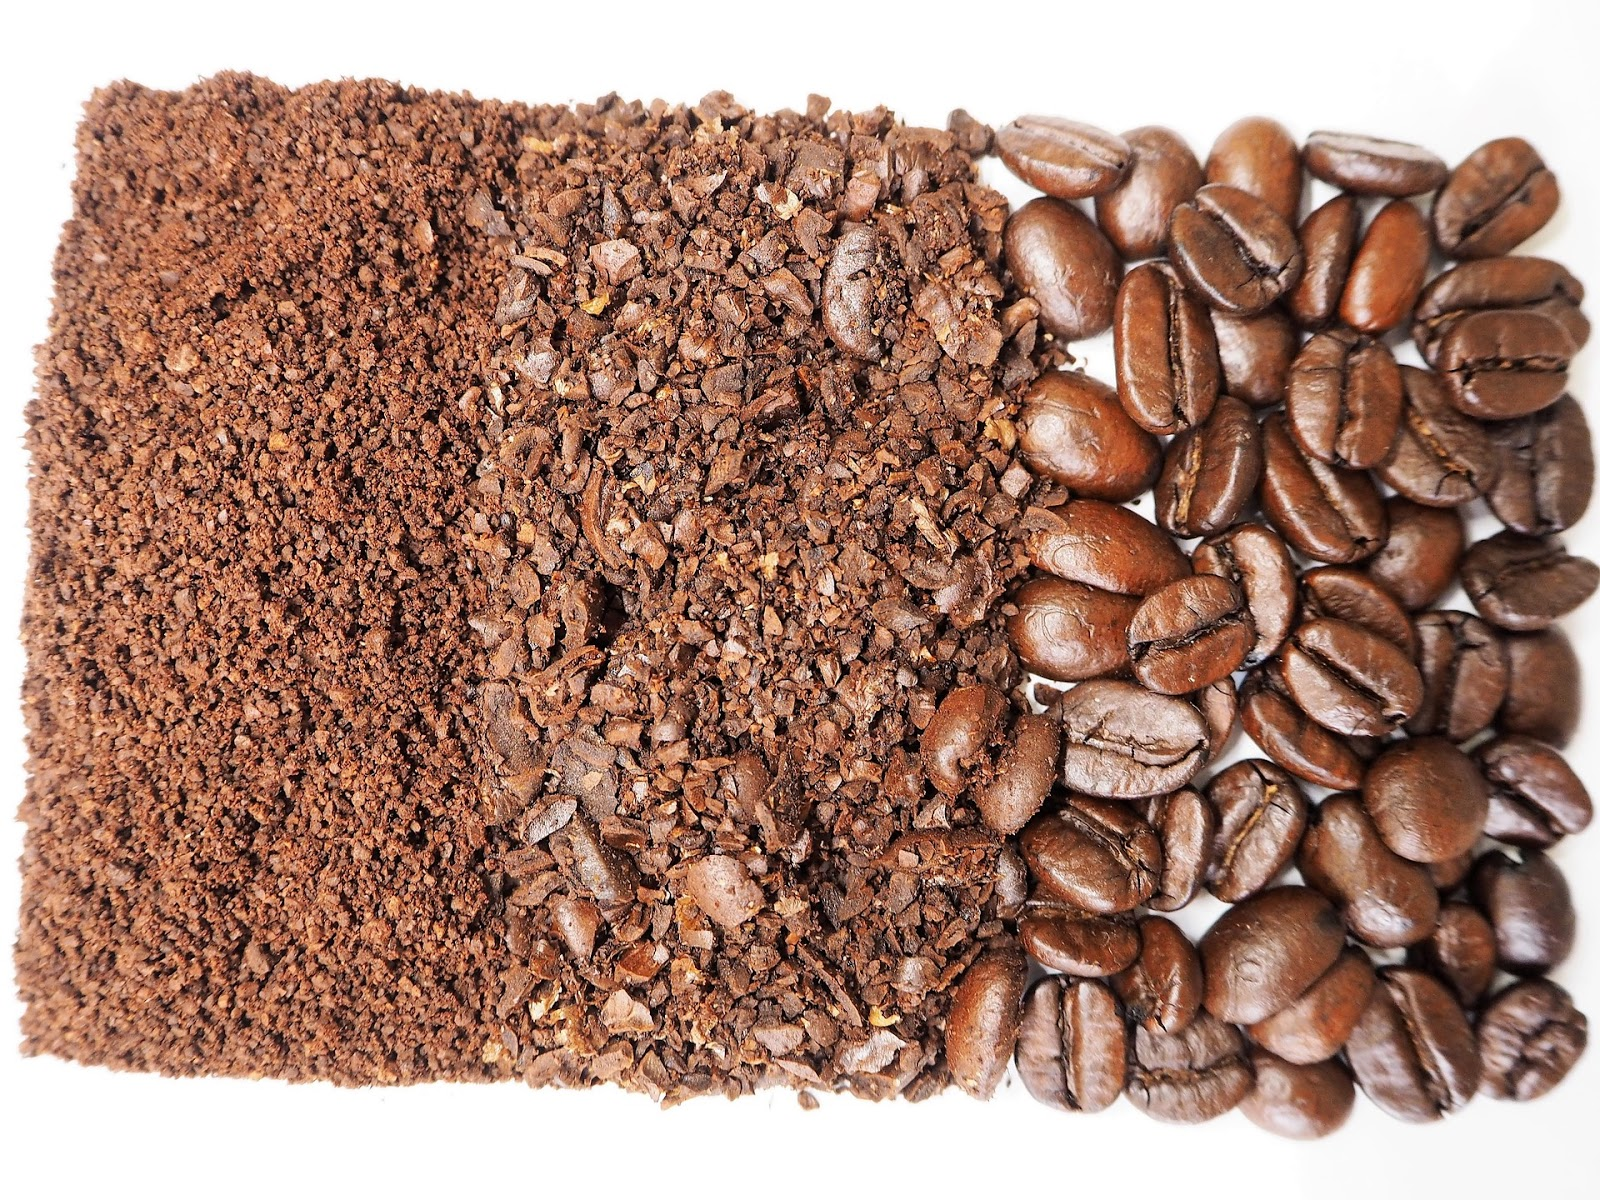 Coffee grounds in three different grind sizes